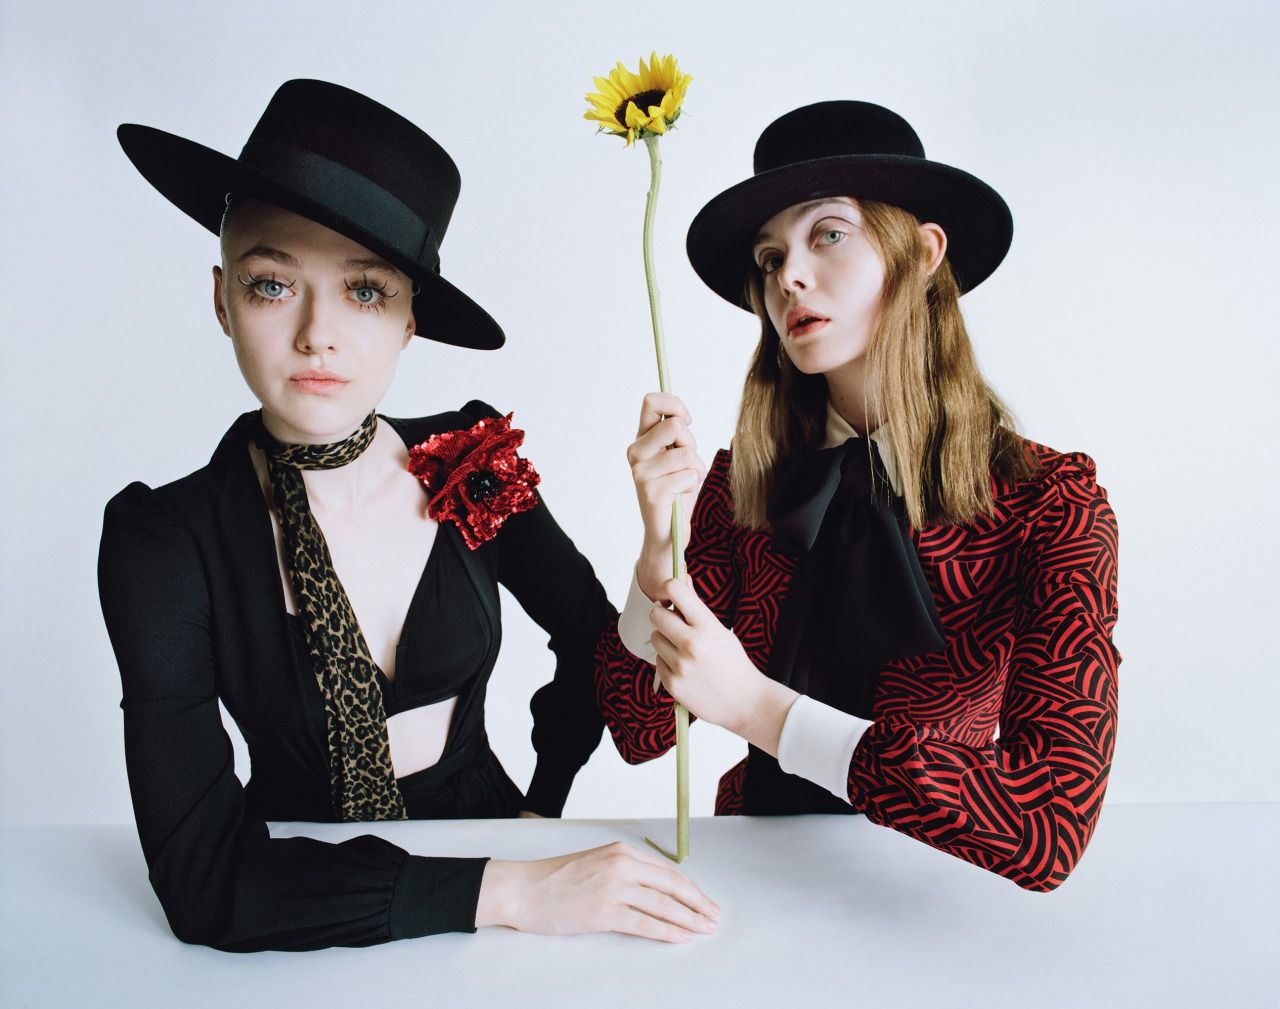 Surreal Sisters Photograph by Tim Walker; styled by Jacob K; W magazine February 2015.